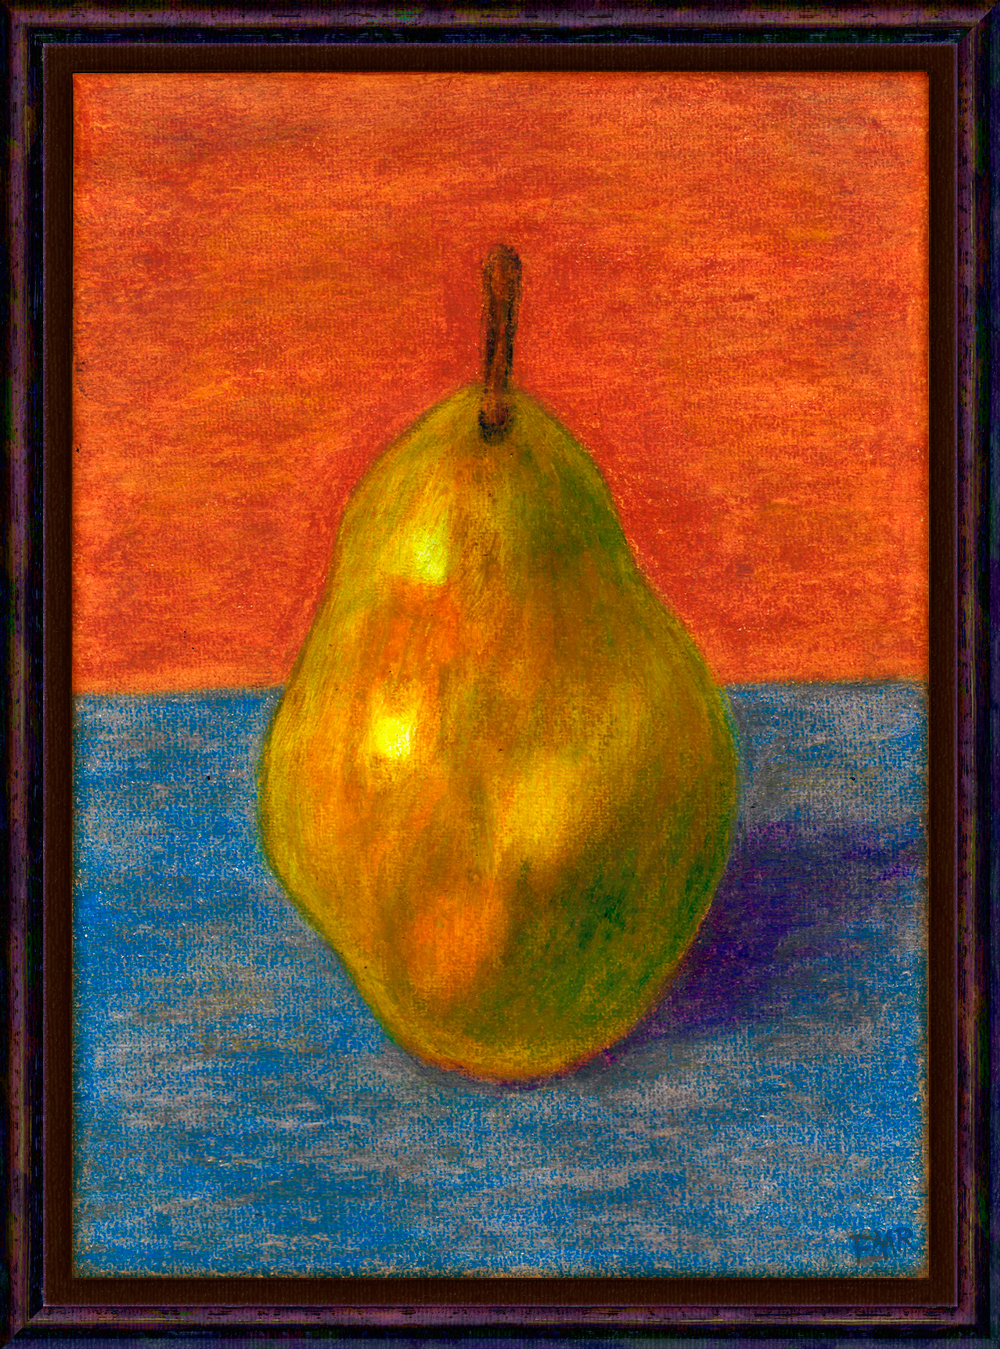 Pear by Saltwater